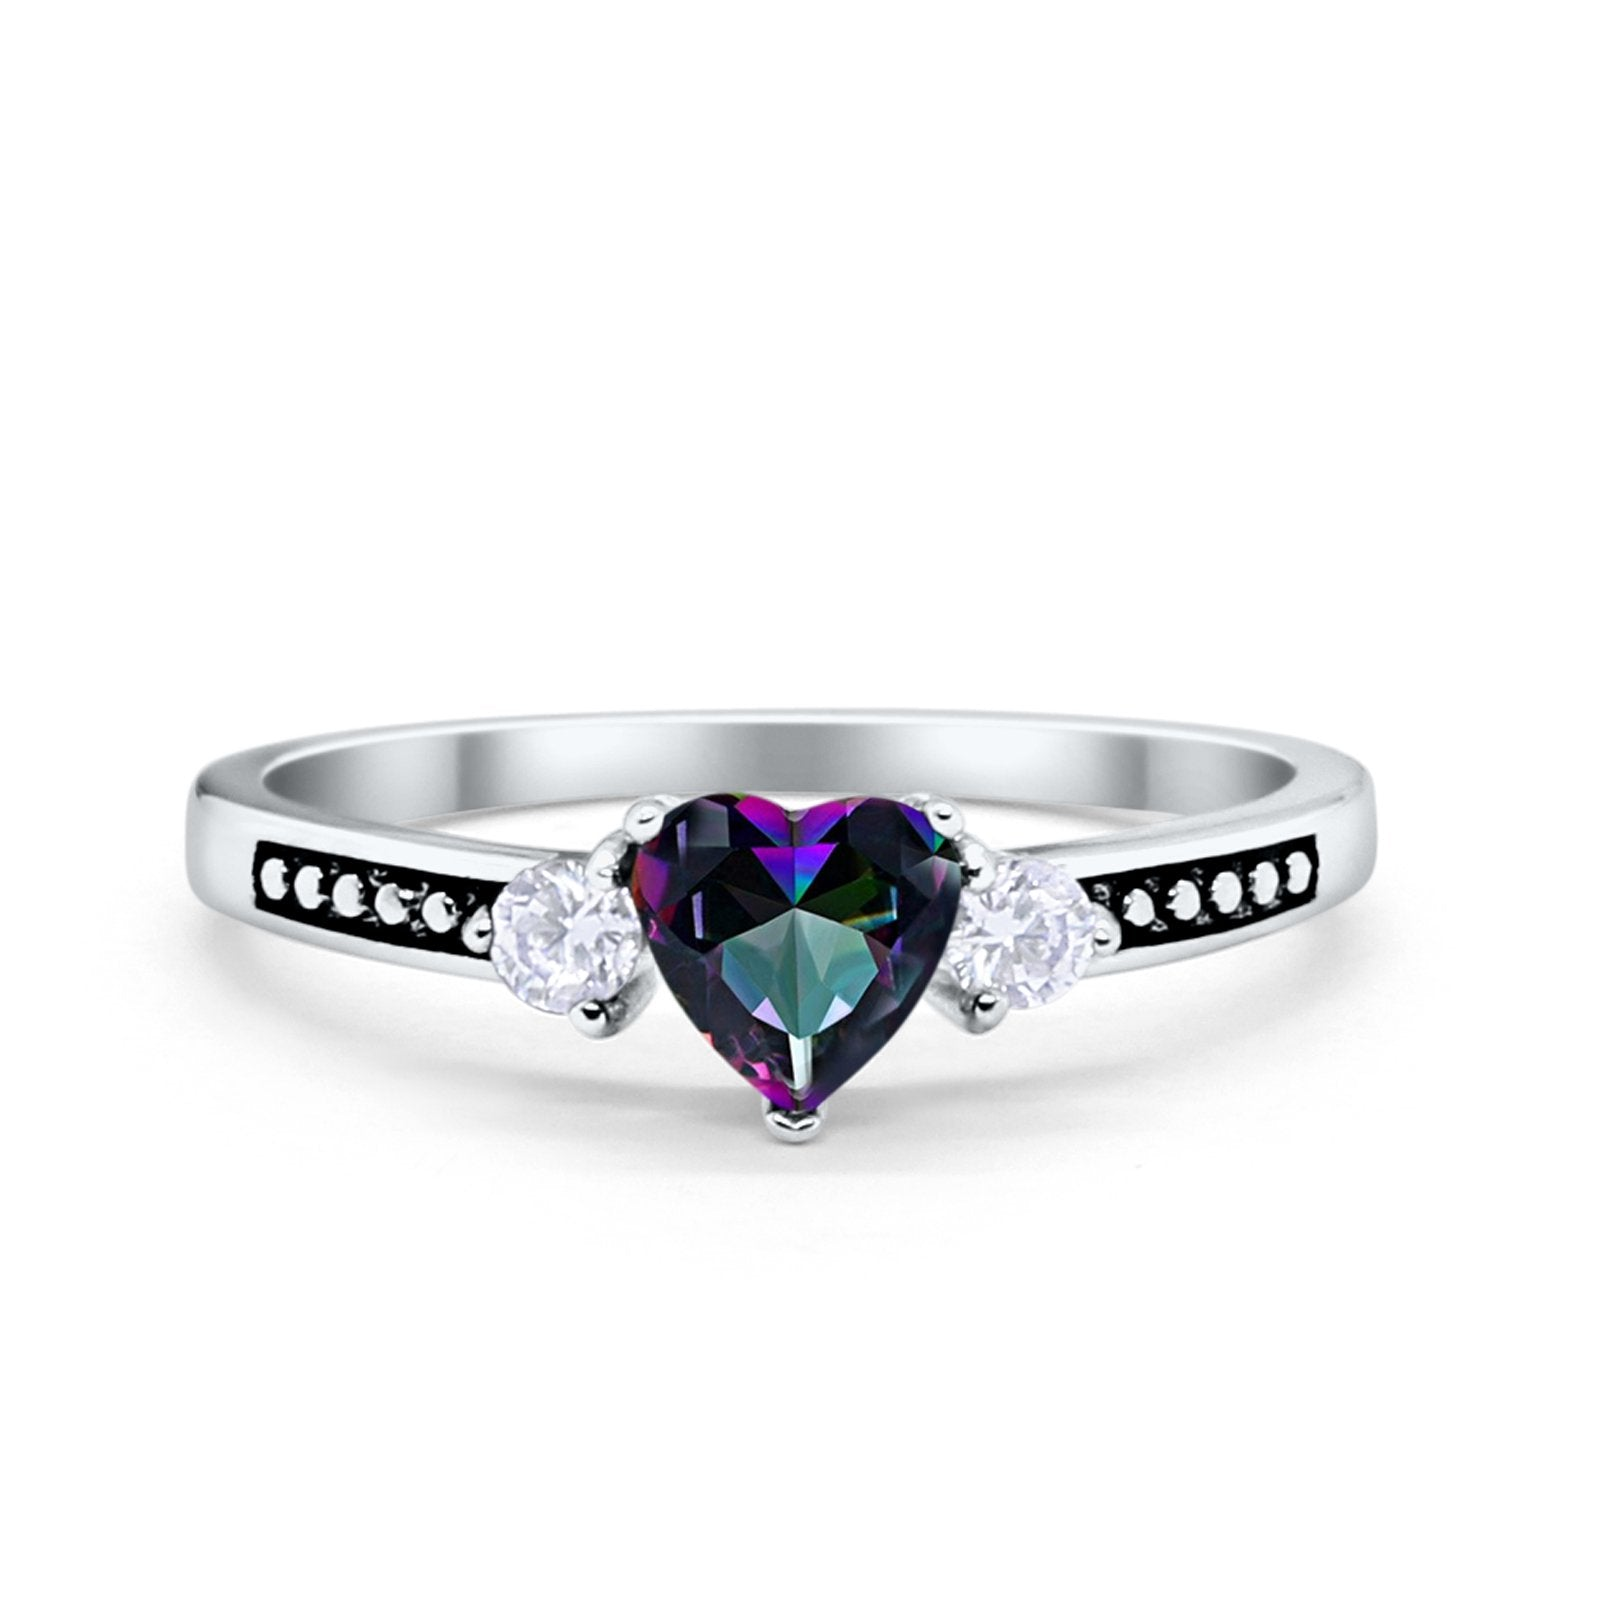 Heart Promise Ring Simulated Cubic Zirconia Black Accent 925 Sterling Silver